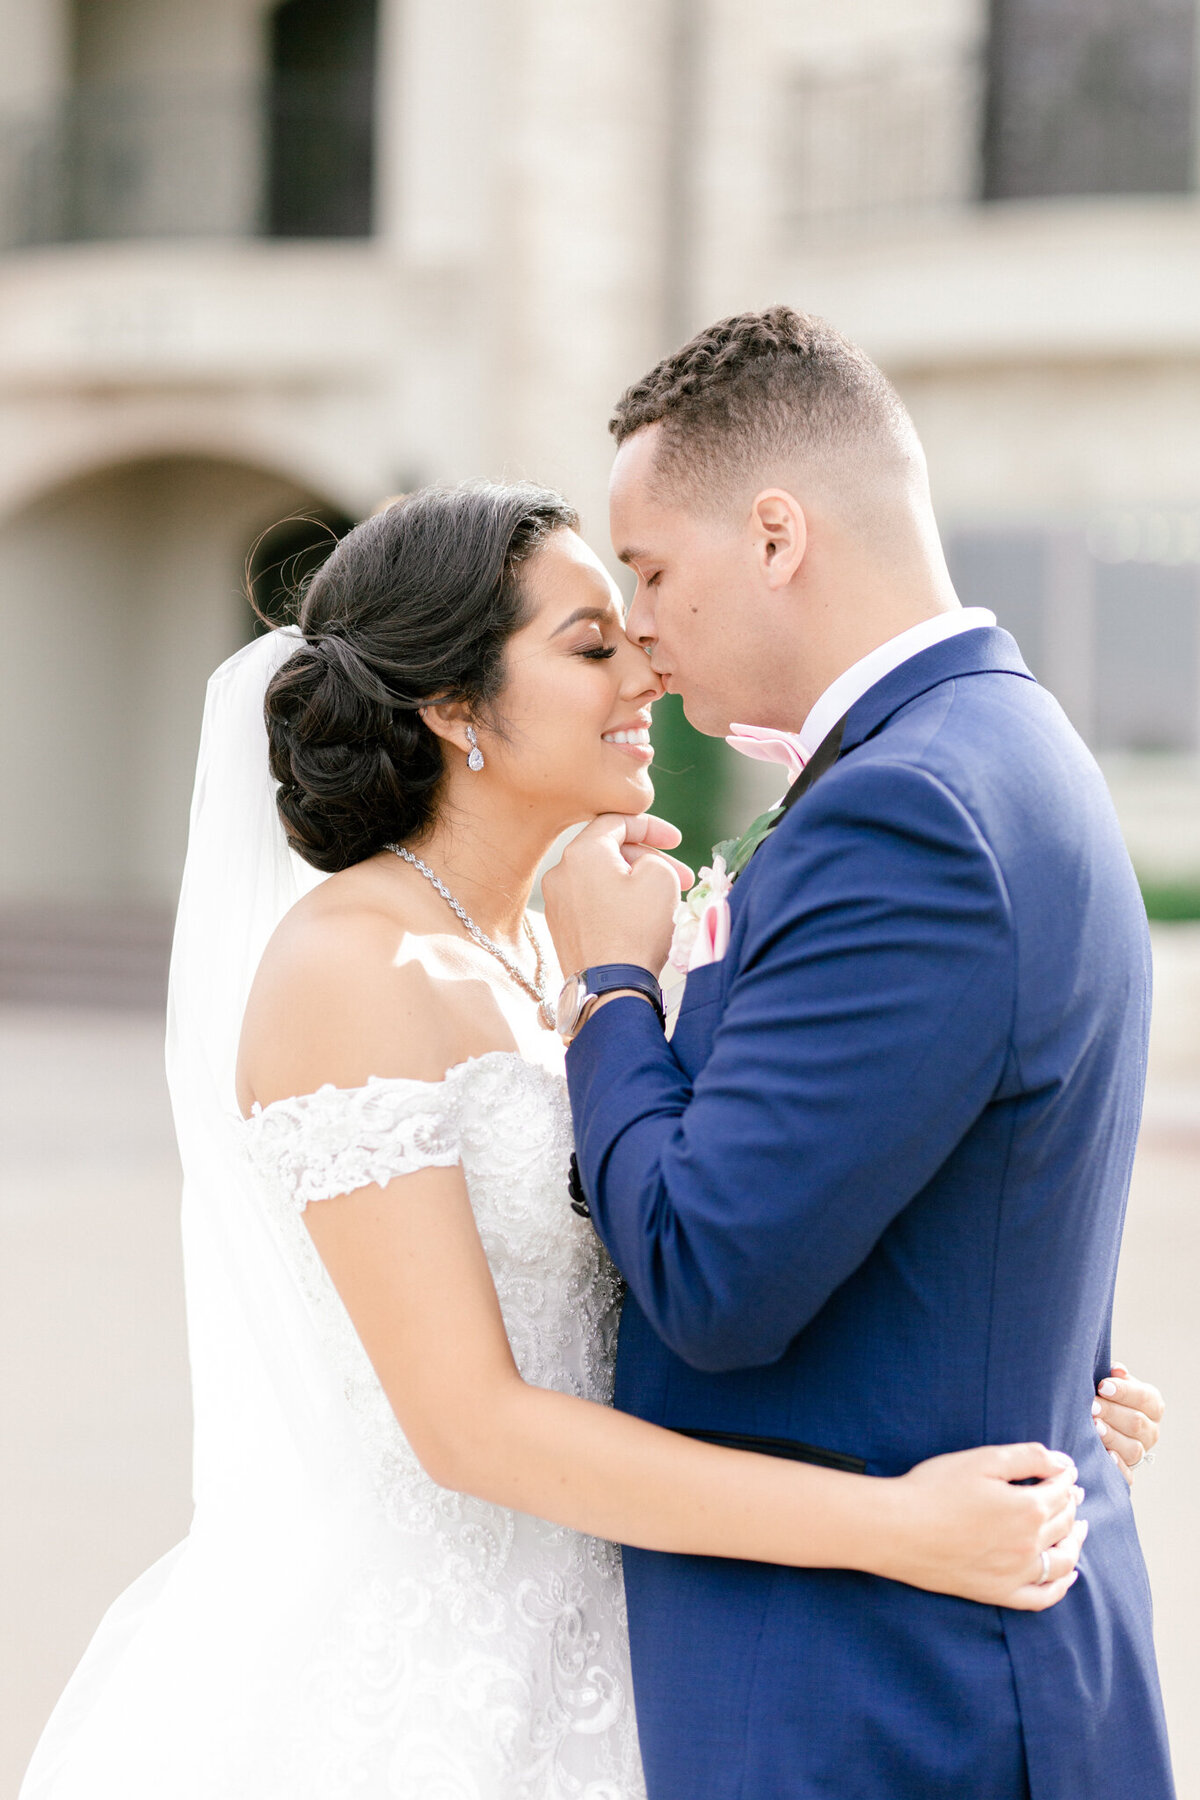 Jasmine & Josh Wedding at Knotting Hill Place | Dallas DFW Wedding Photographer | Sami Kathryn Photography-88